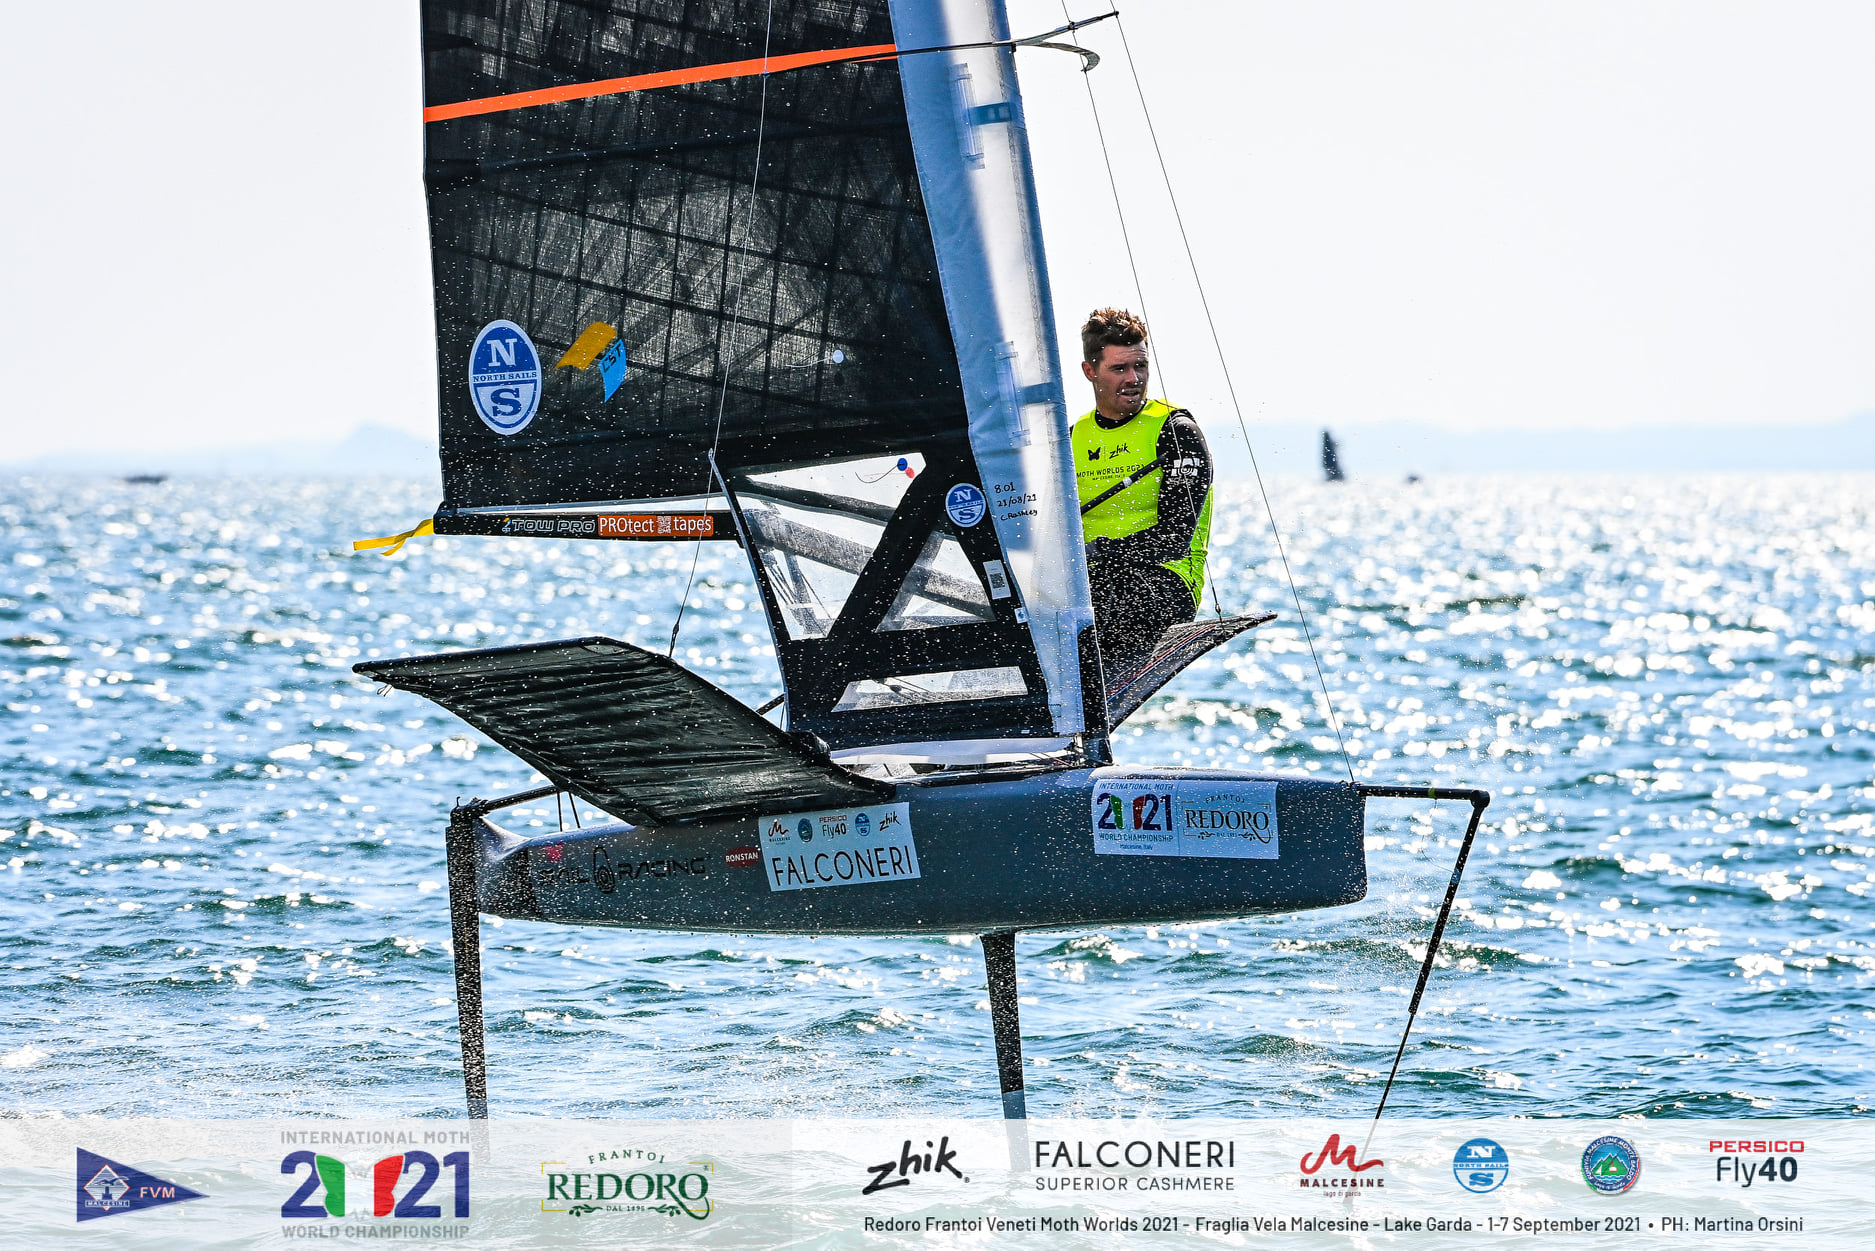 Tom Slingsby sailing upwind on the moth foiling.